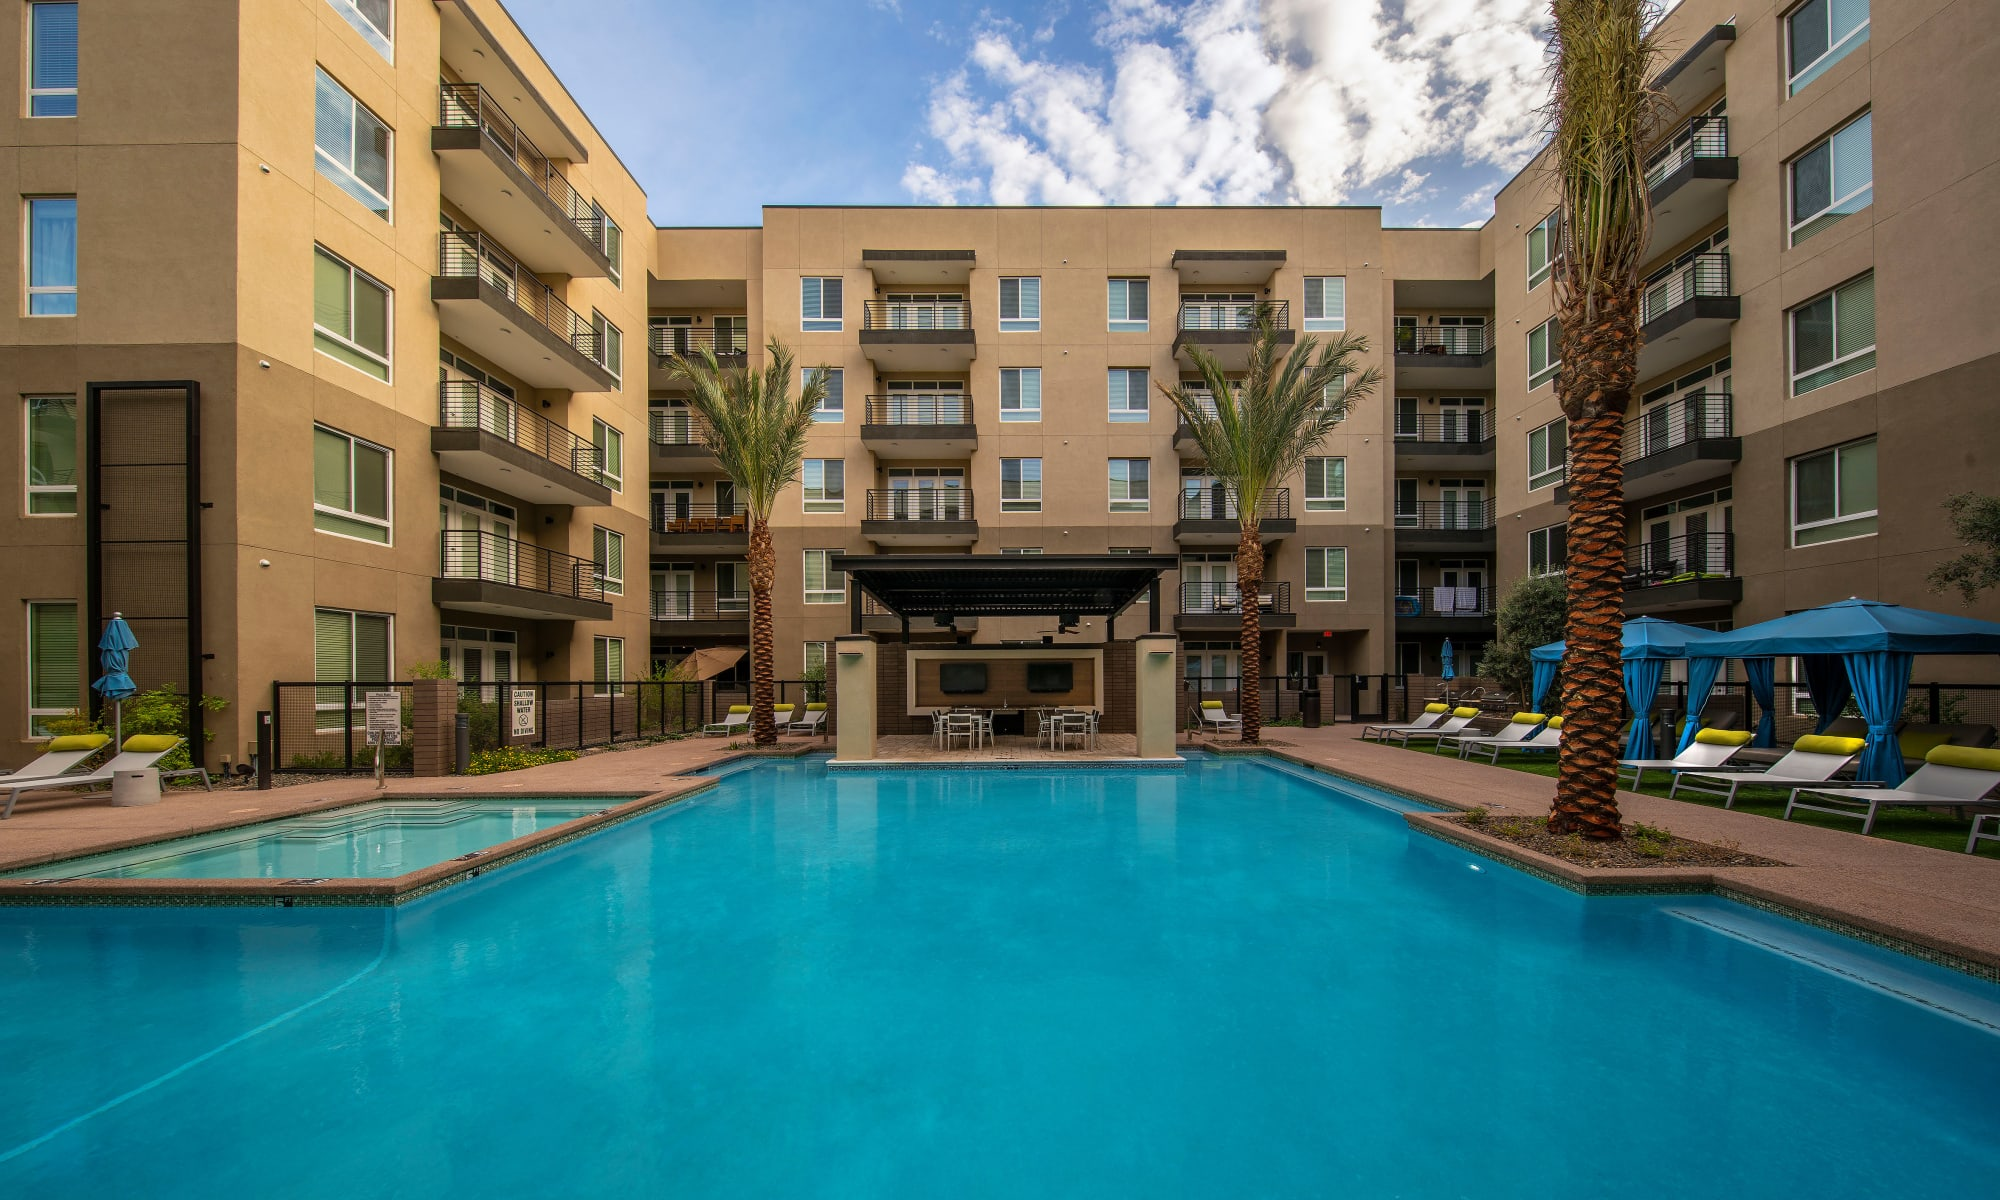 Scottsdale luxury apartments at Carter in Arizona